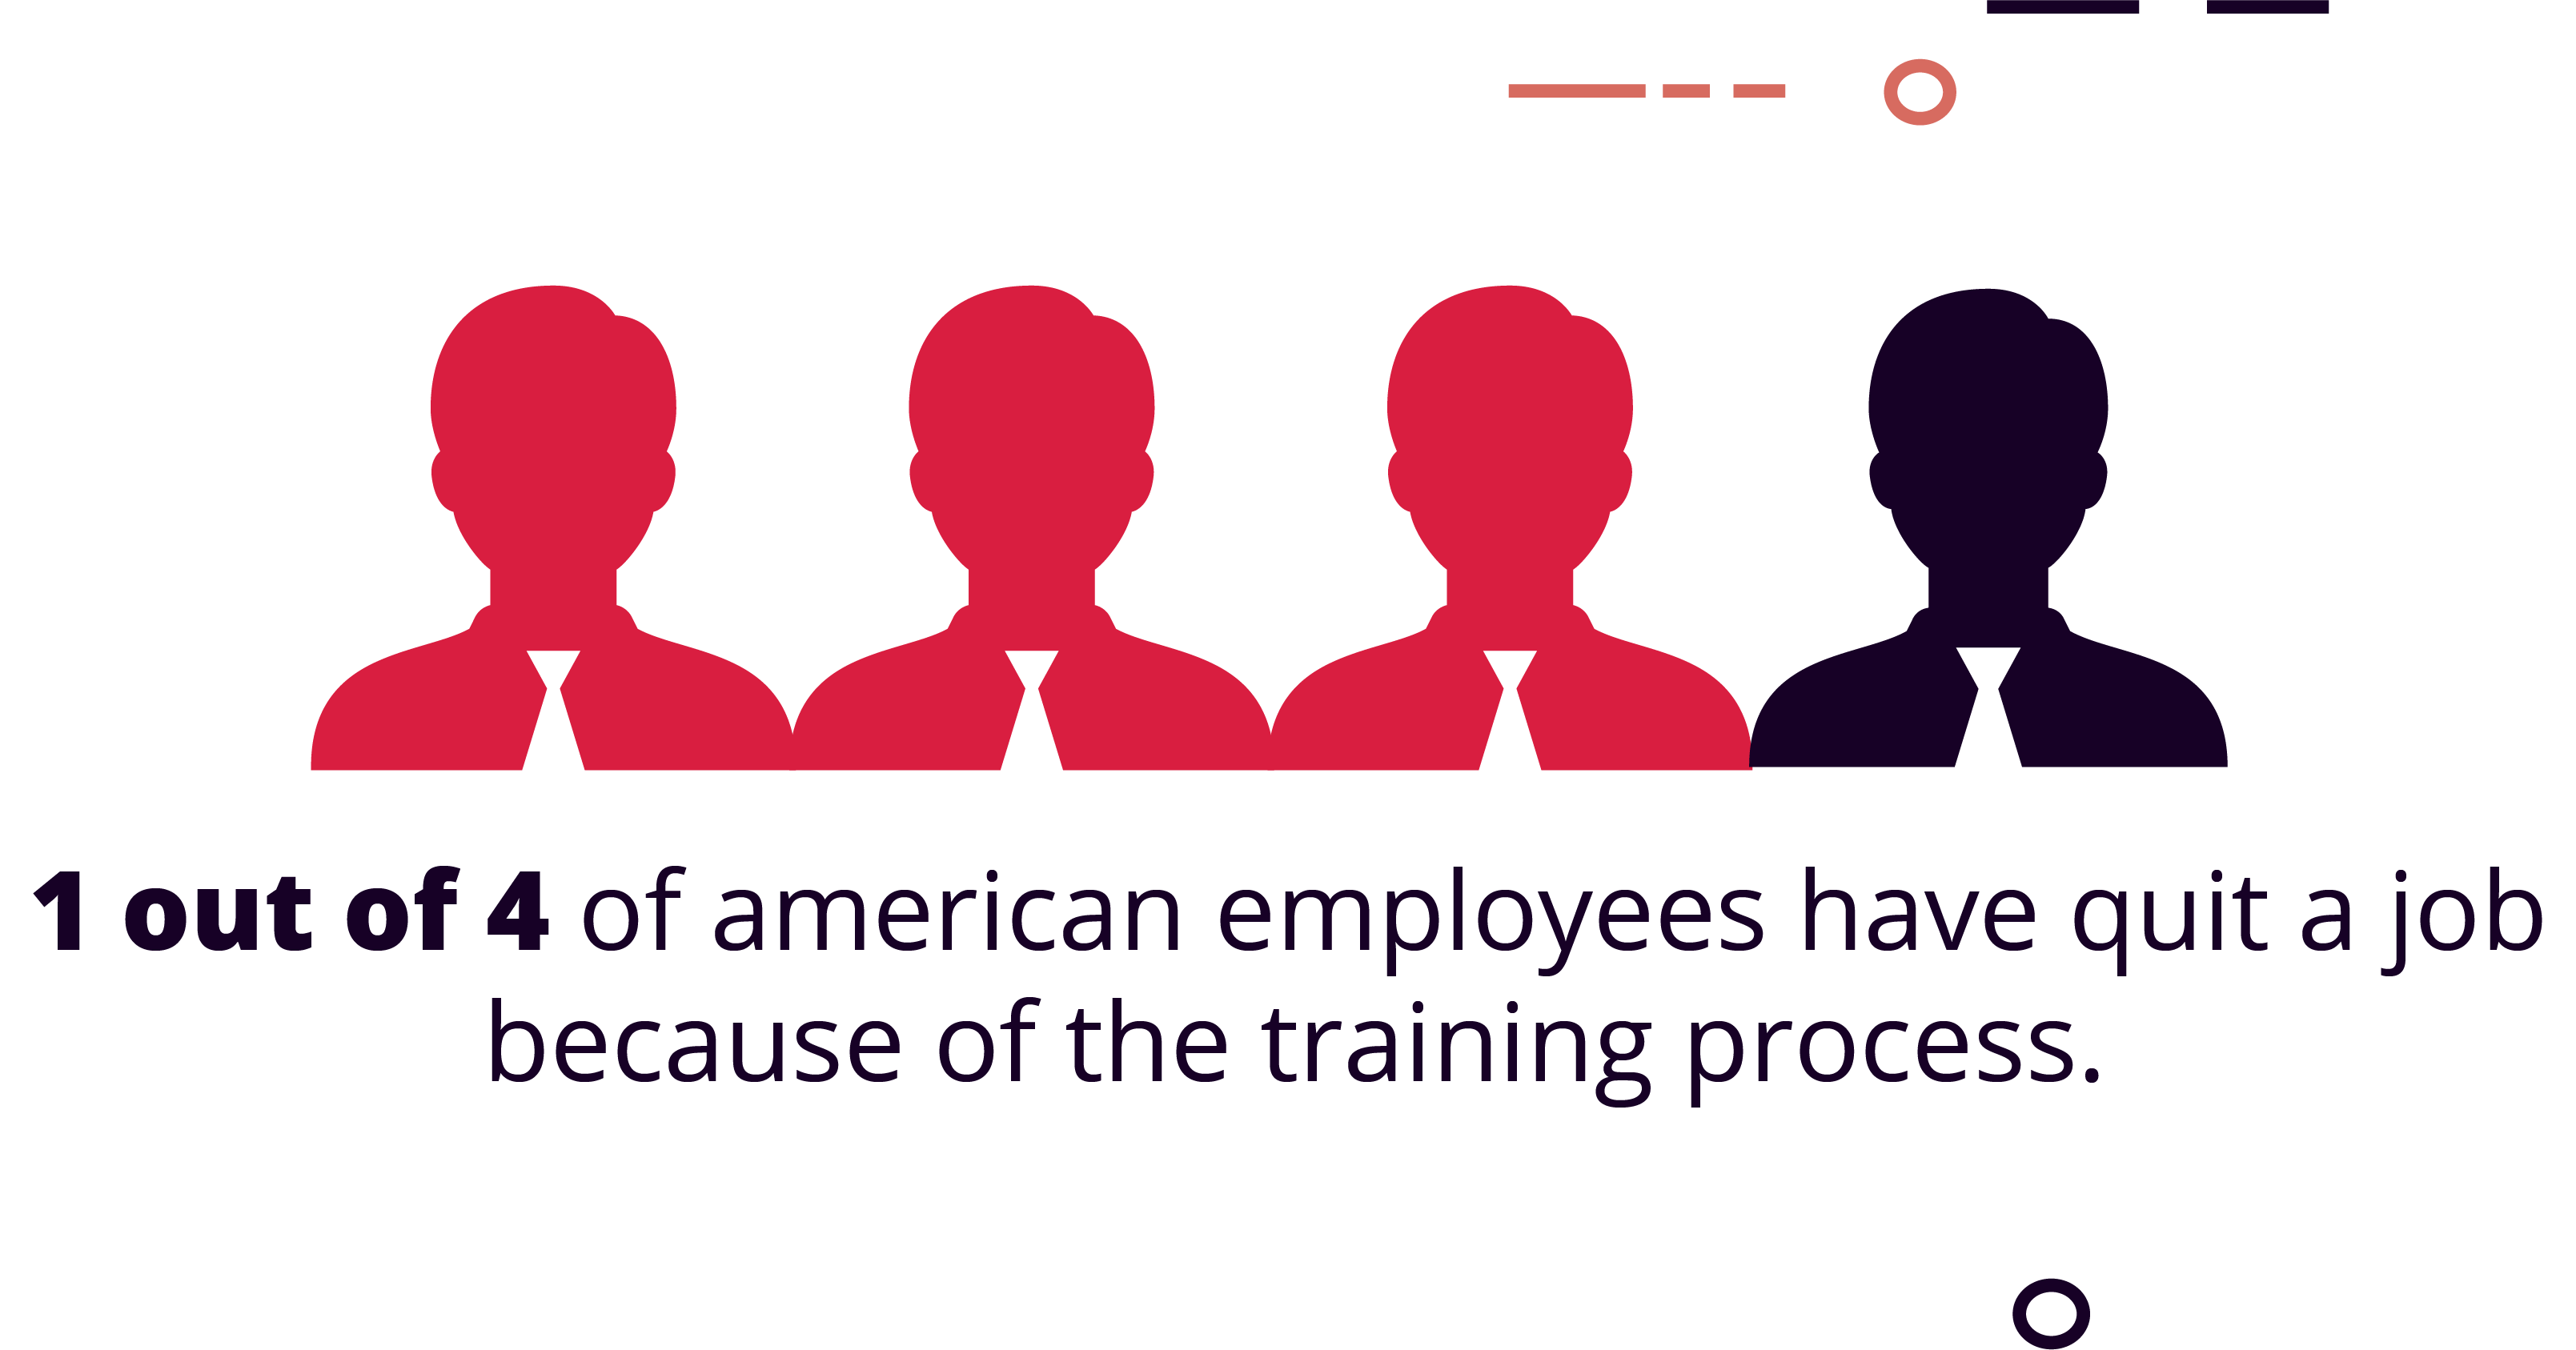 1 in 4 American employees have quit a job because of the training process